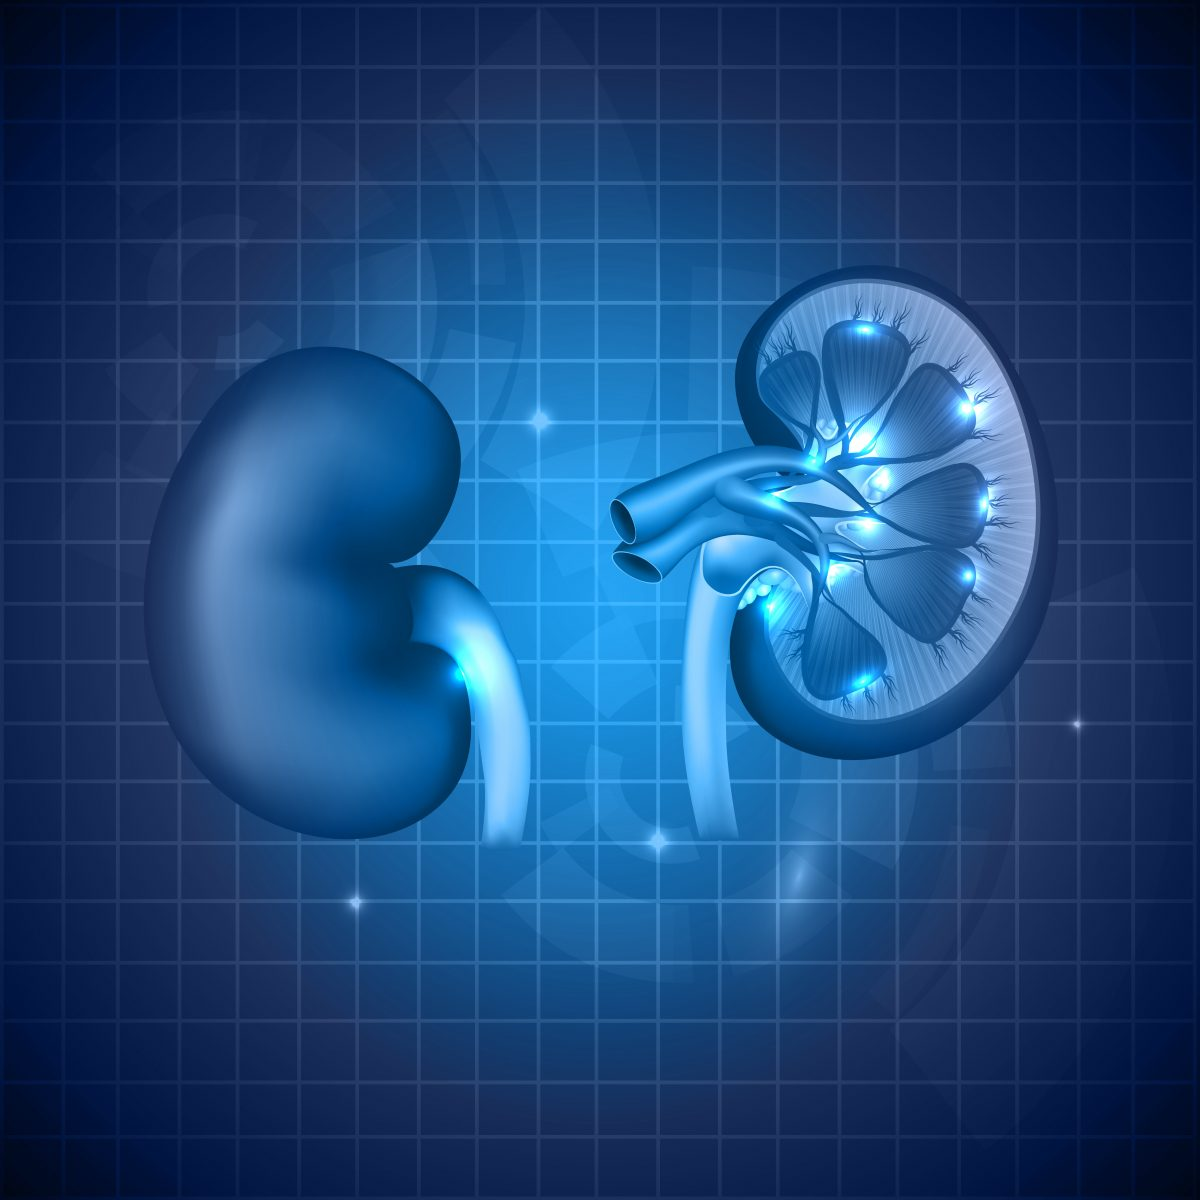 Better Kidney Transplant Outcomes Found Among HIV Patients in Comparison to Hepatitis C Patients